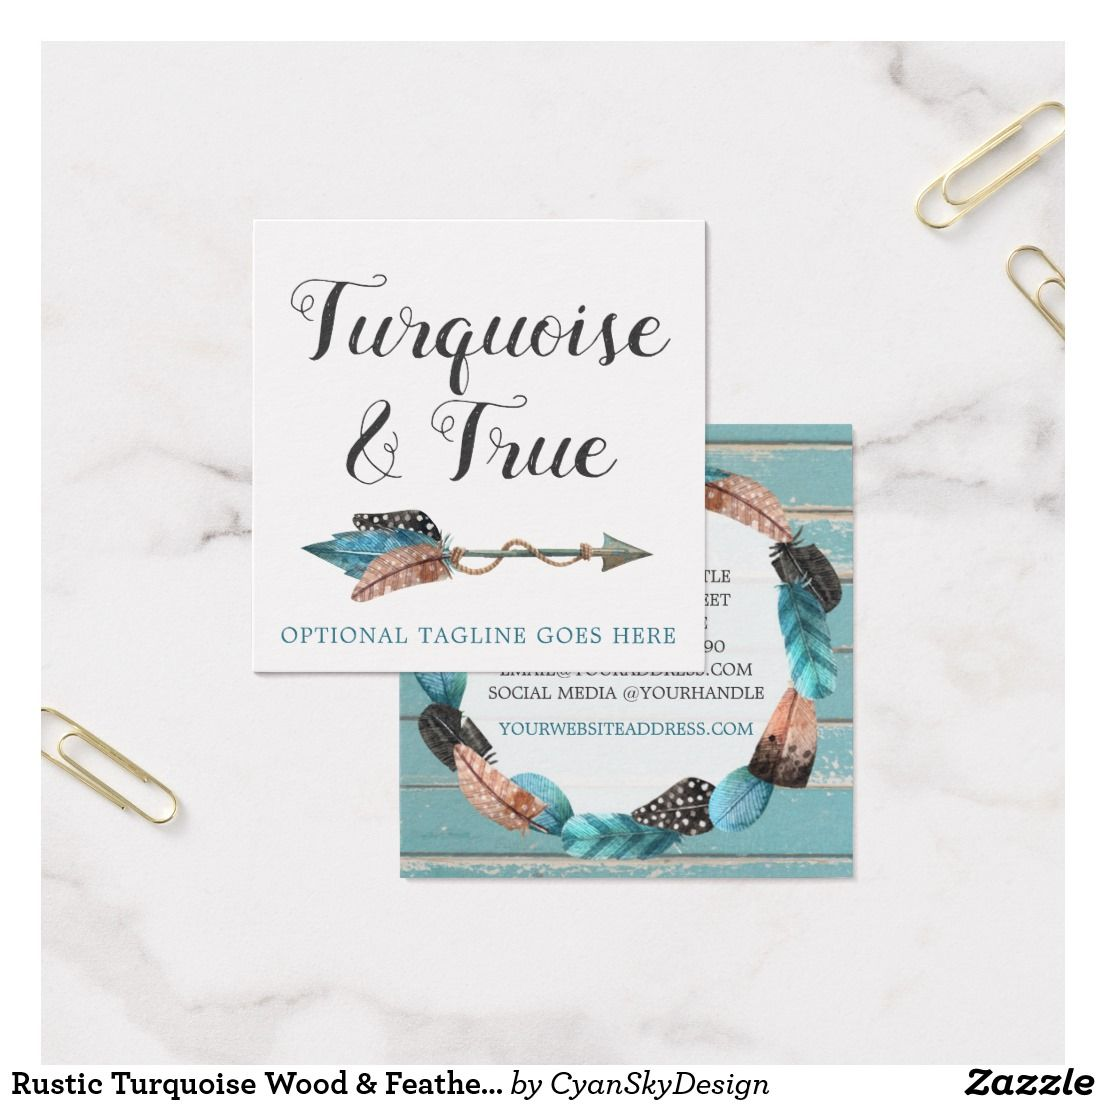 Rustic turquoise wood feather arrow boho chic square business card rustic turquoise wood feather arrow boho chic square business card reheart Image collections